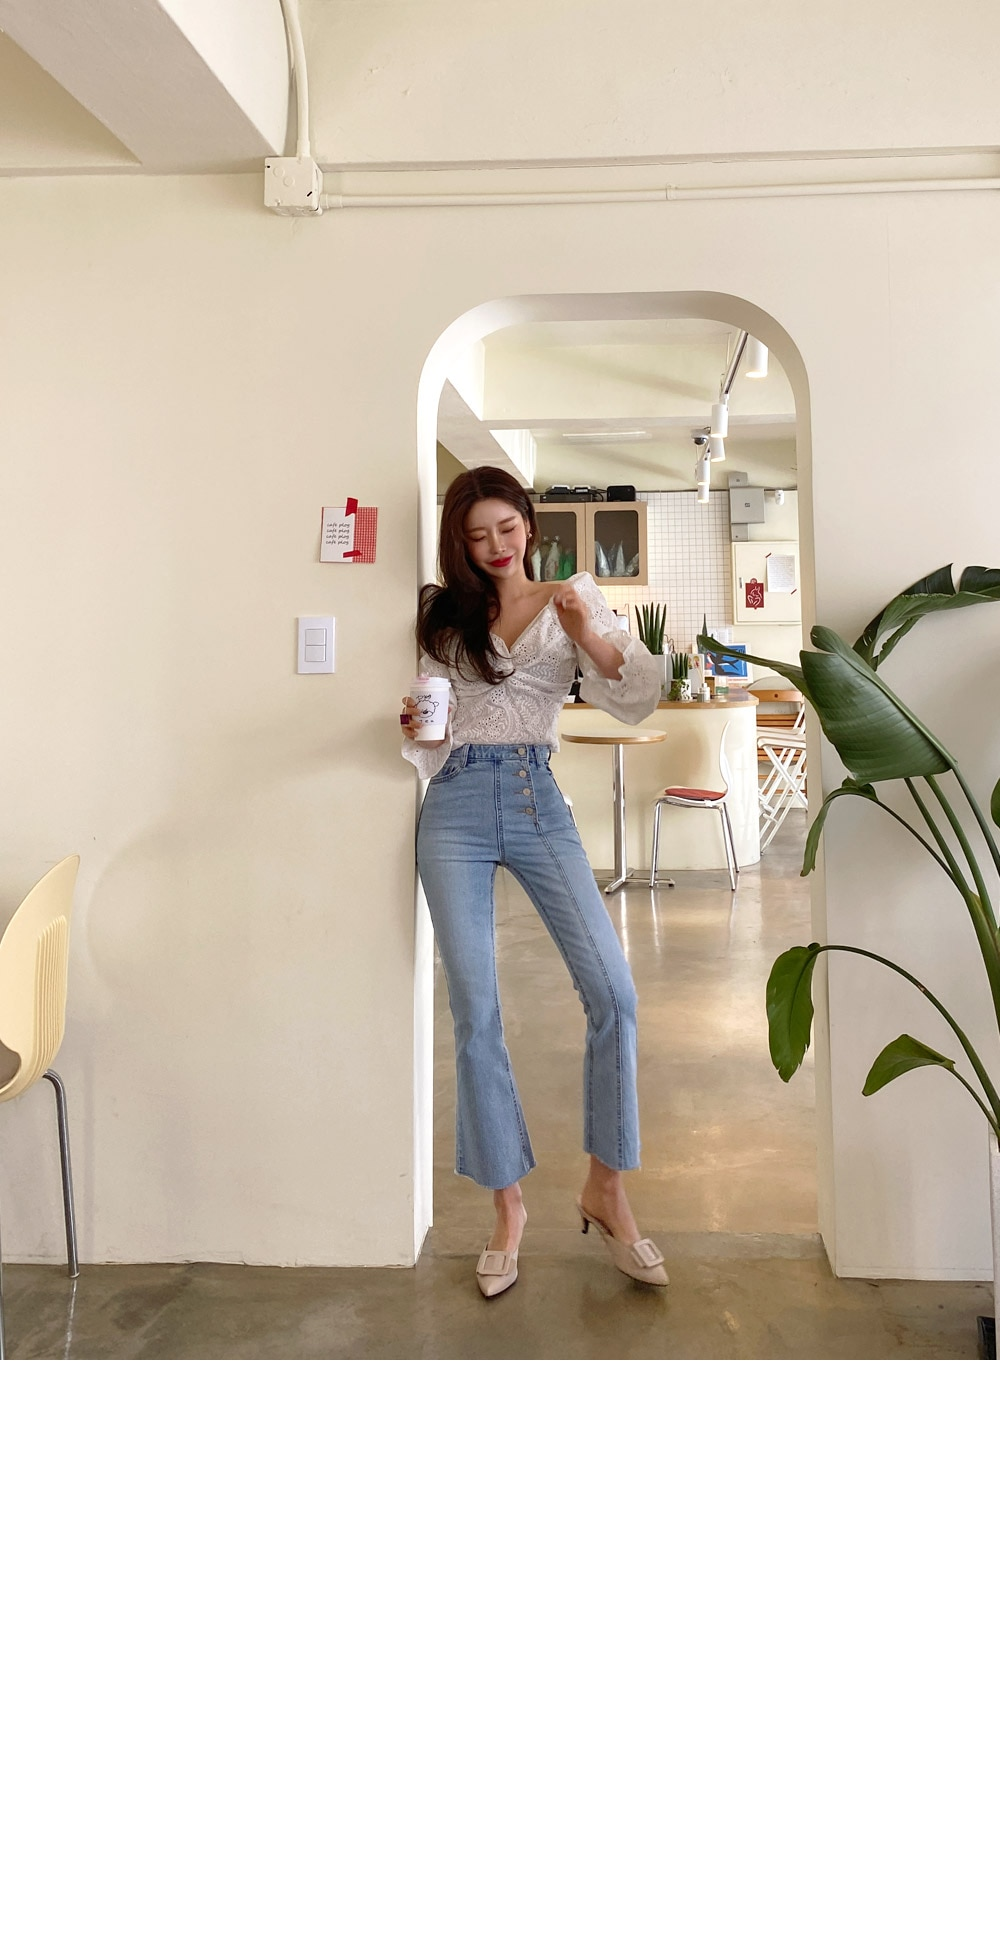 New 2020 High Waist Elegant Comfortable Jeans For Women Single Button Fashionable Casual Denim Pants Jeans Washed Flare Jeans